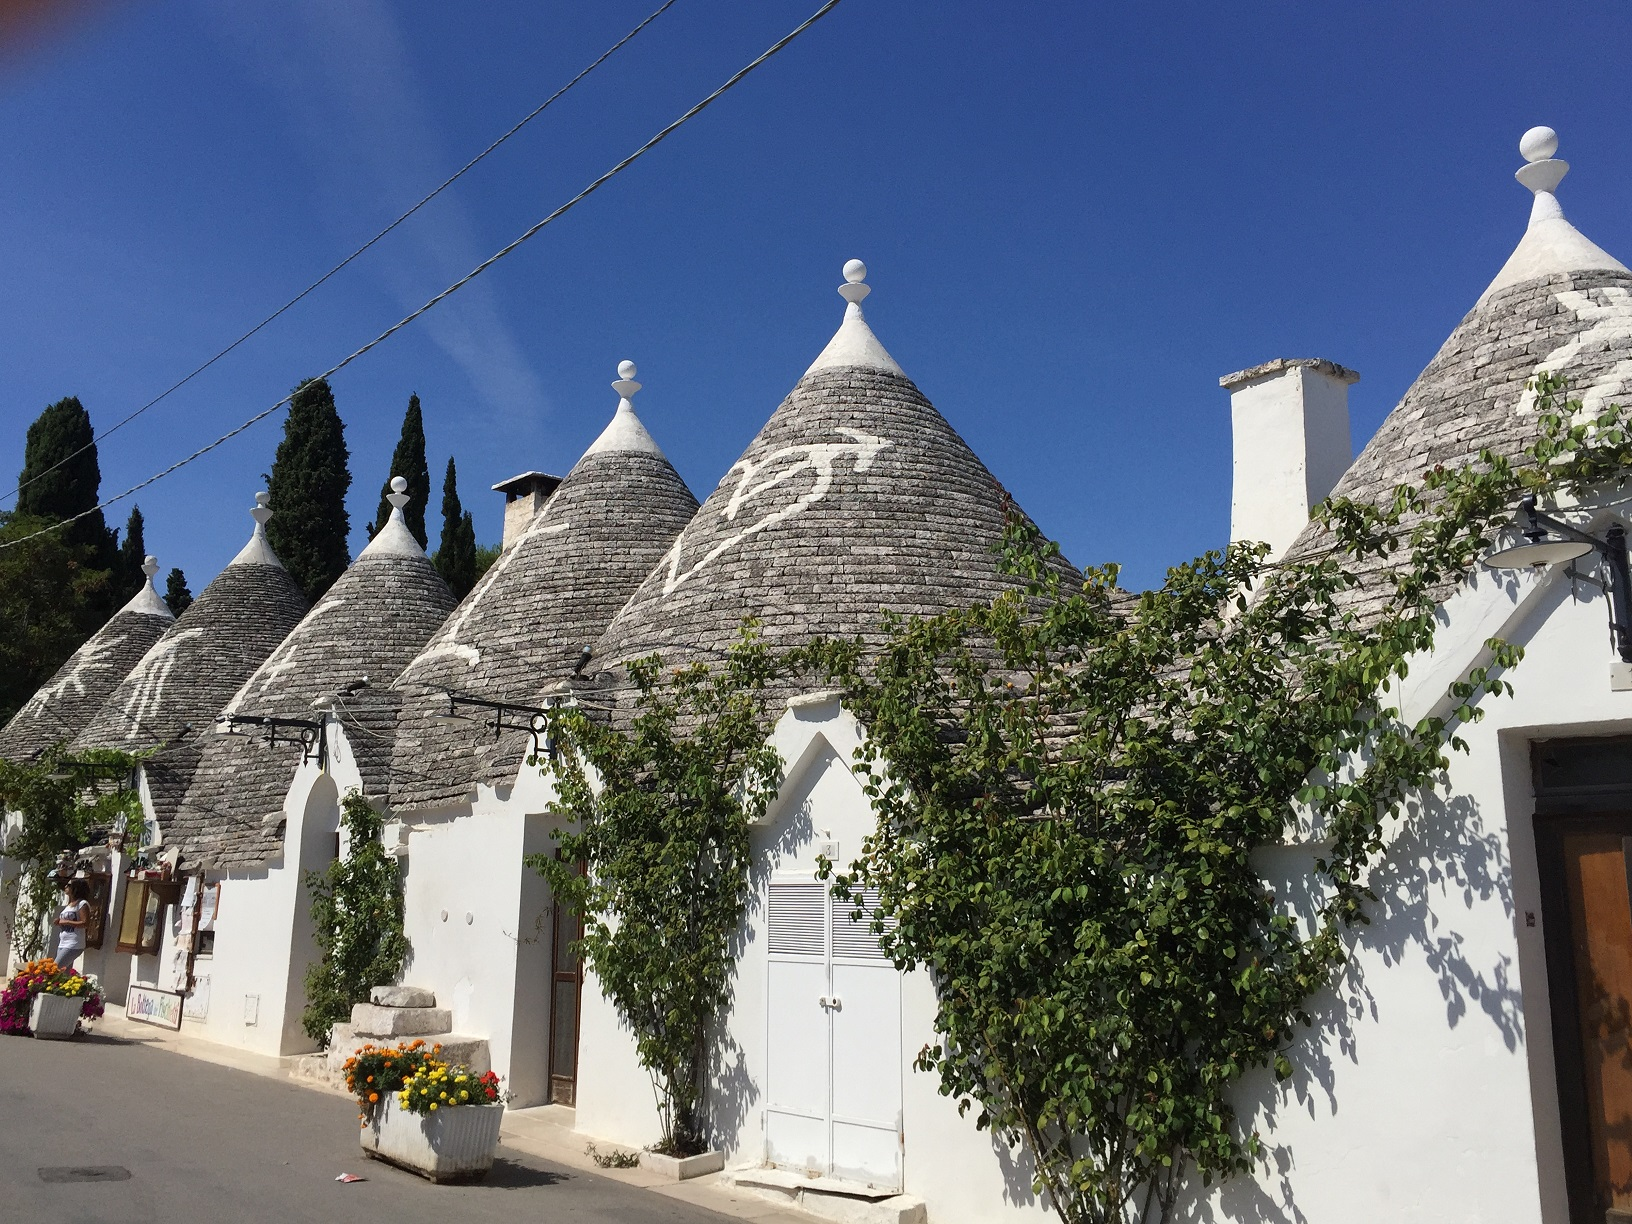 Alberobello: finding fairyland in southern Italy